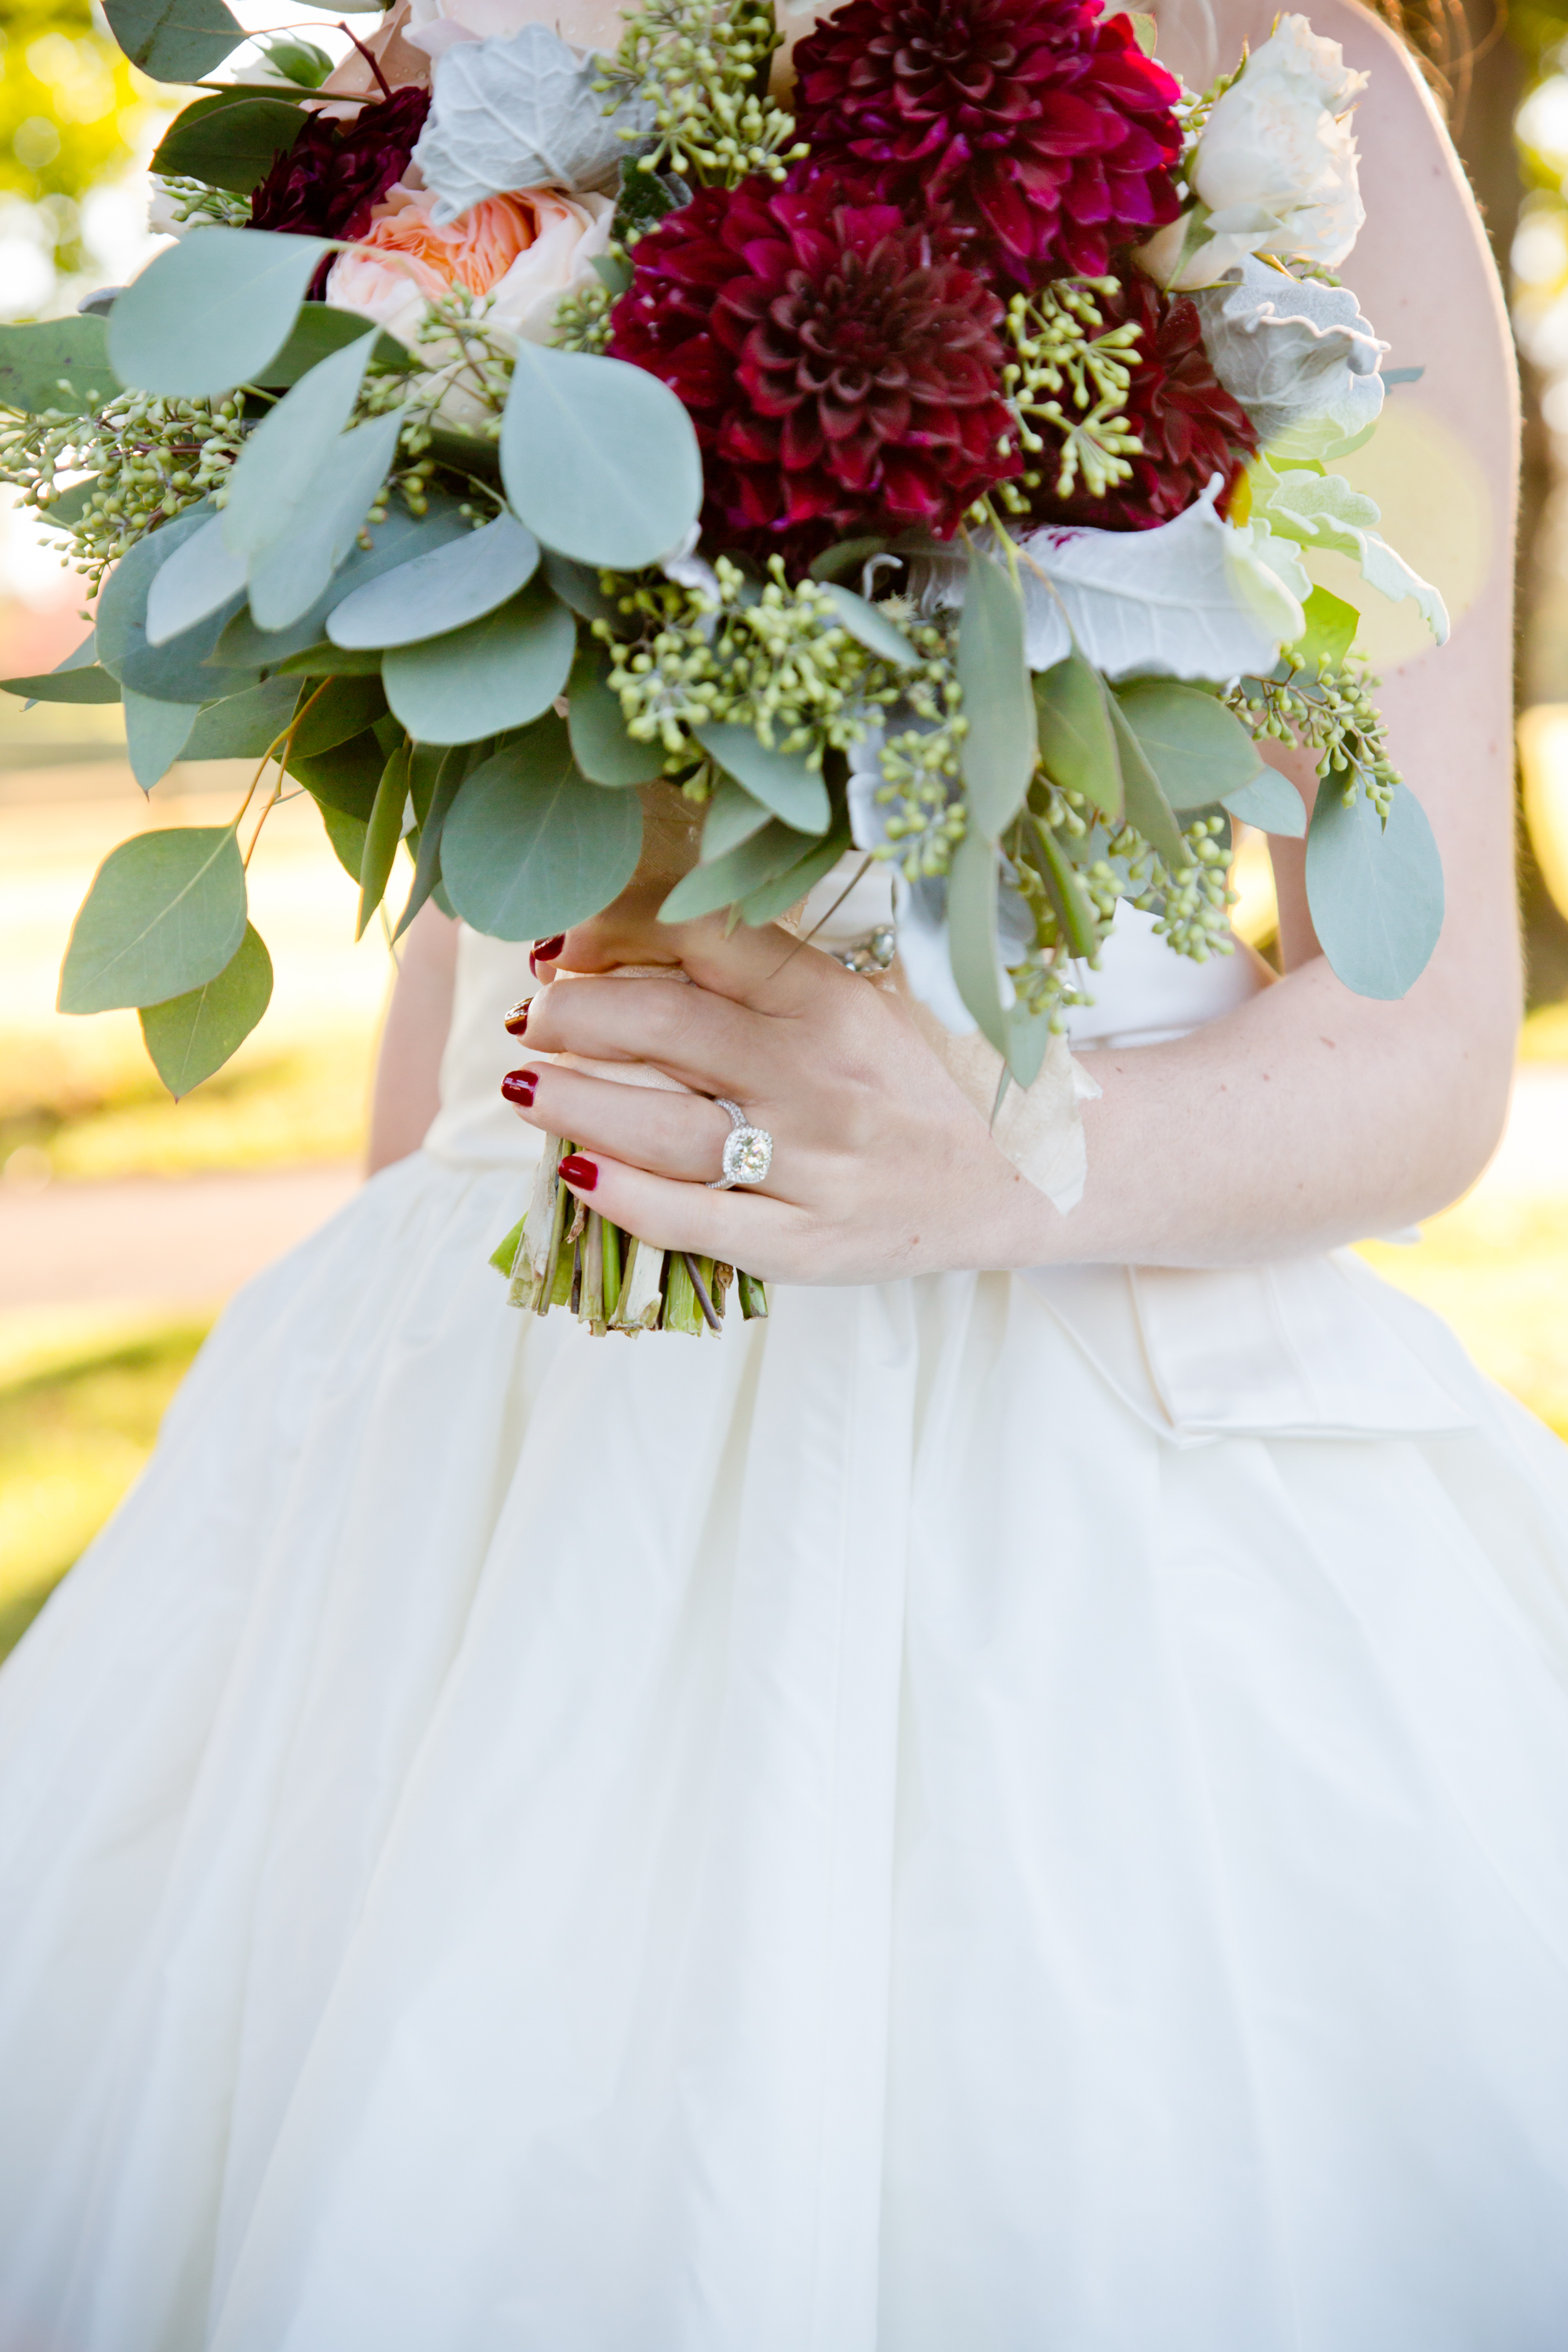 036_CarlyGaebe_SteadfastStudio_WeddingPhotography_Readyluck_Baltimore_Outdoors_HorseFarm_Fall_Bride_Bouquet_Floral_Ring_Diamond.jpg